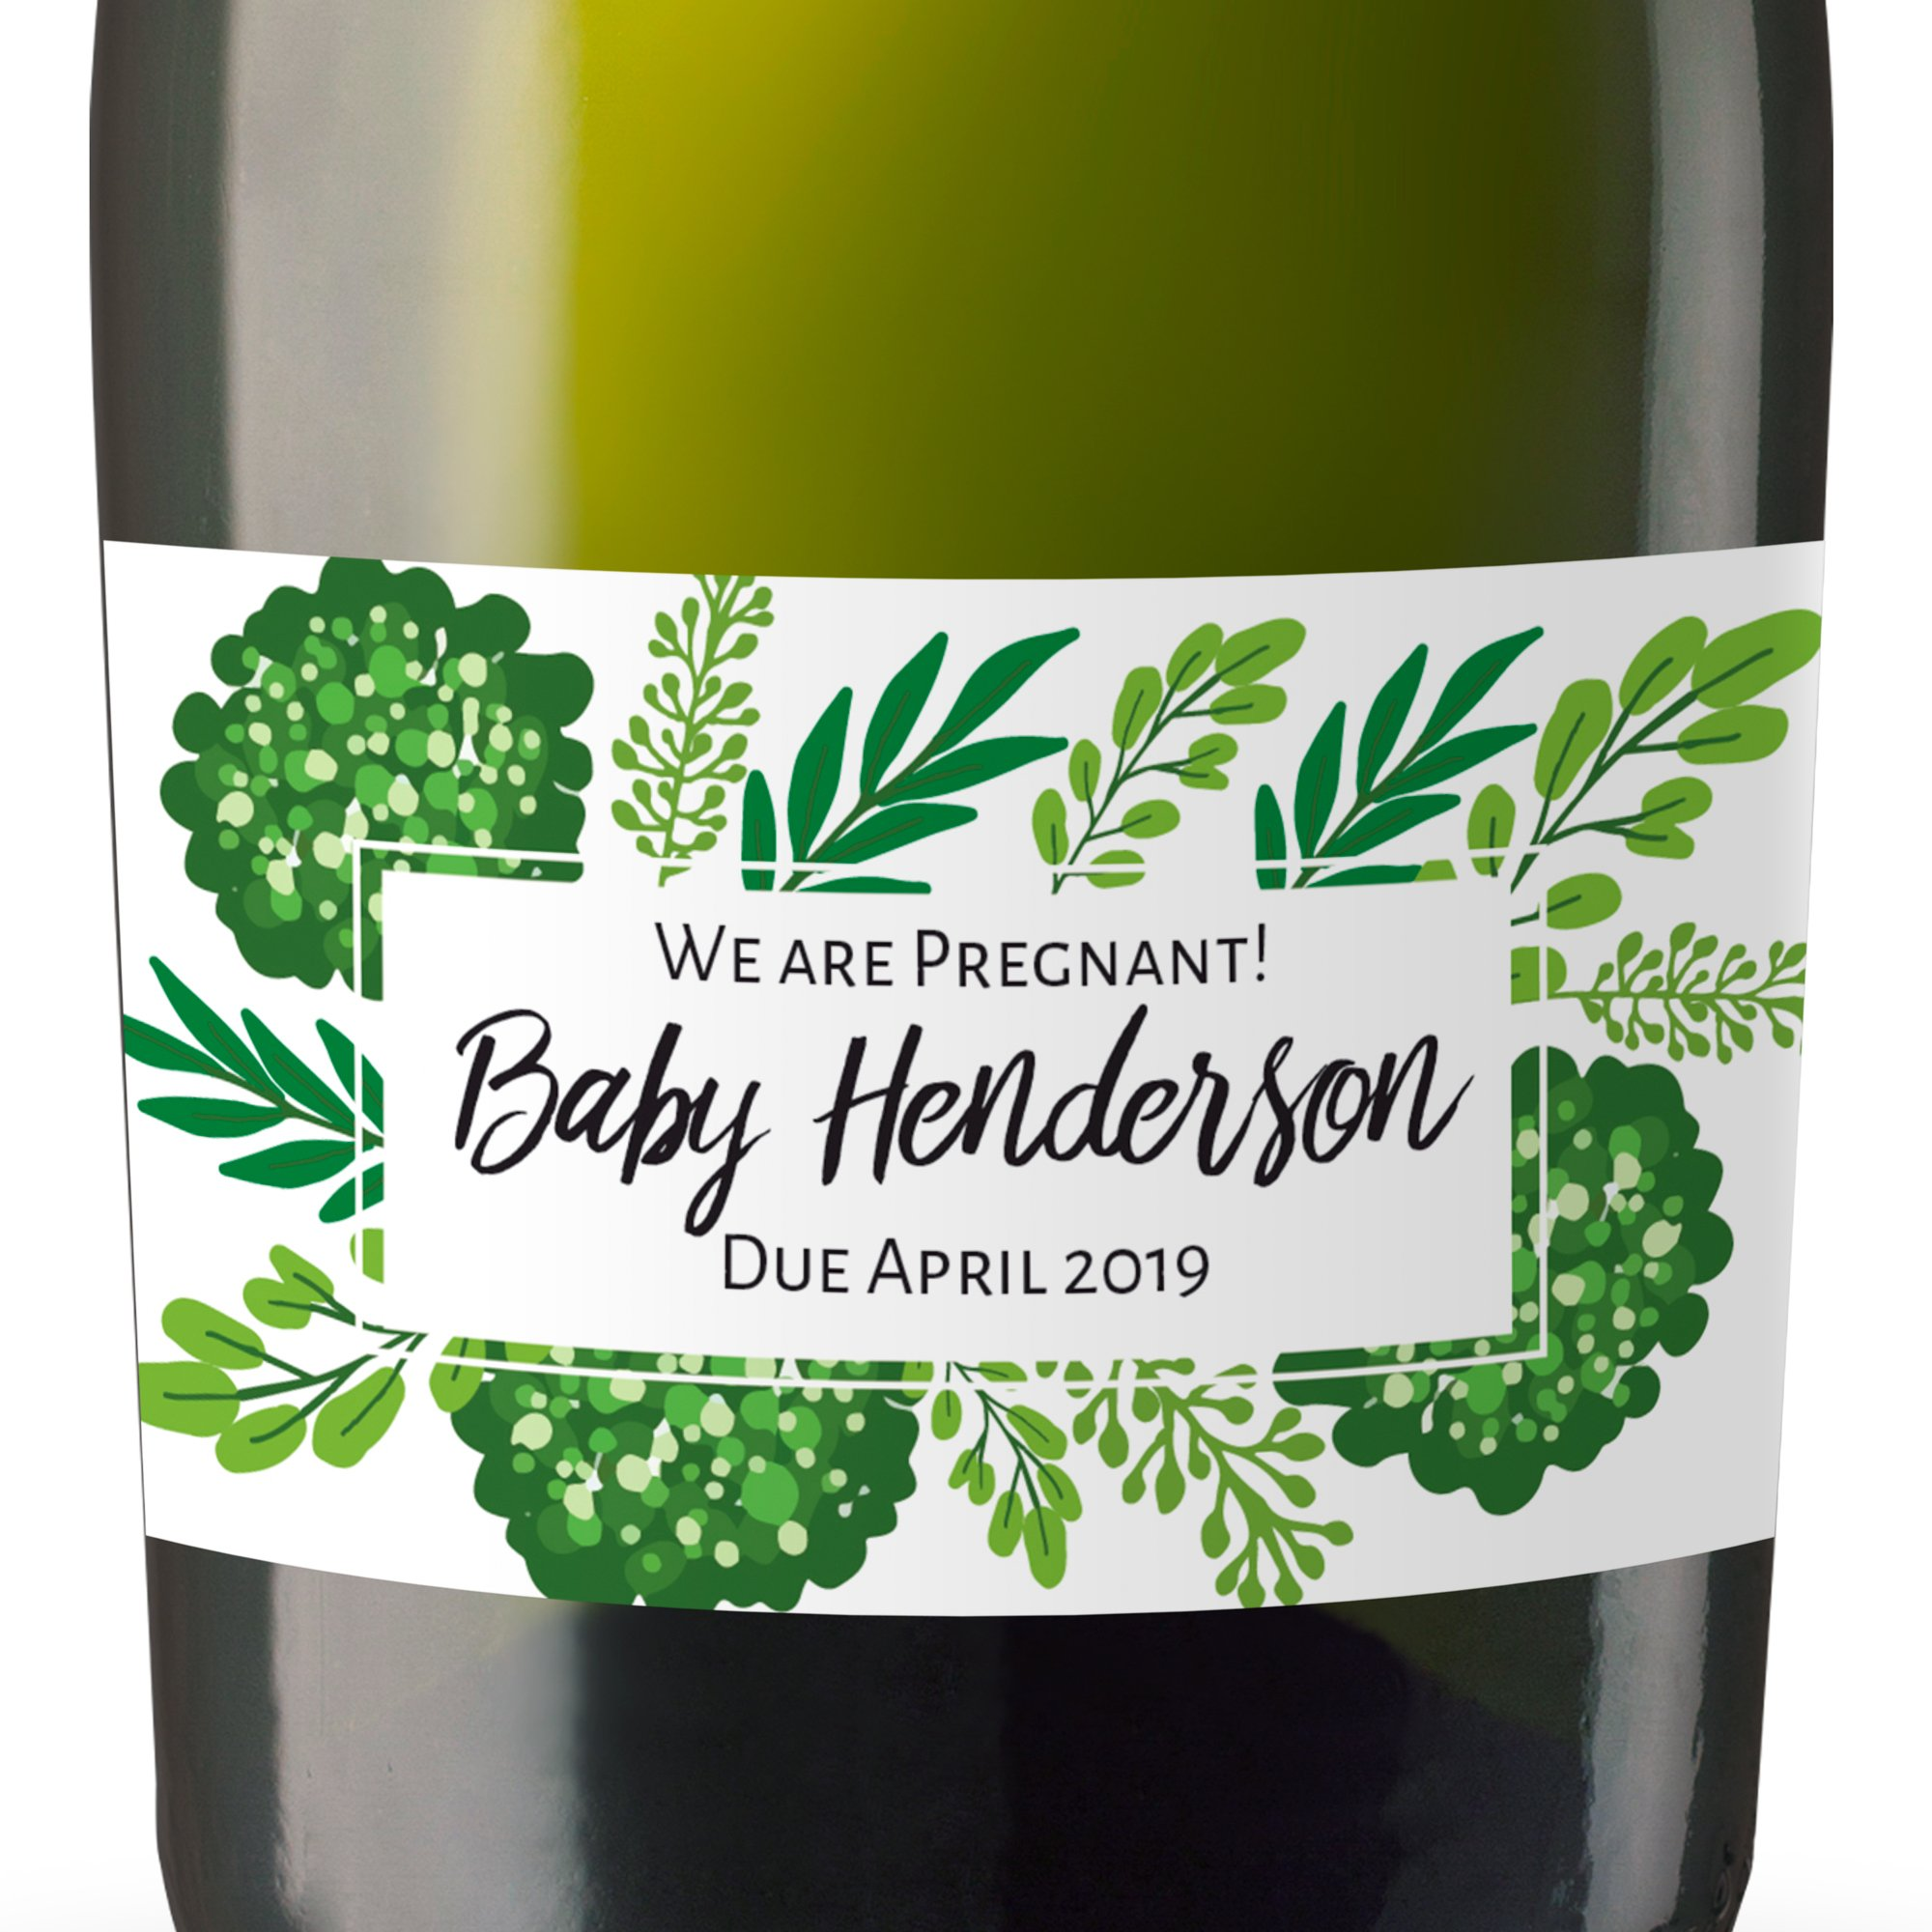 ''We Are Pregnant!'' Mini Champagne Wine Bottle Custom Label Sticker for Baby Shower Party, Pregnancy Announcement Gifts for Guests, Event Invitation - Unique Specialized Personalized Bespoke Set of 8